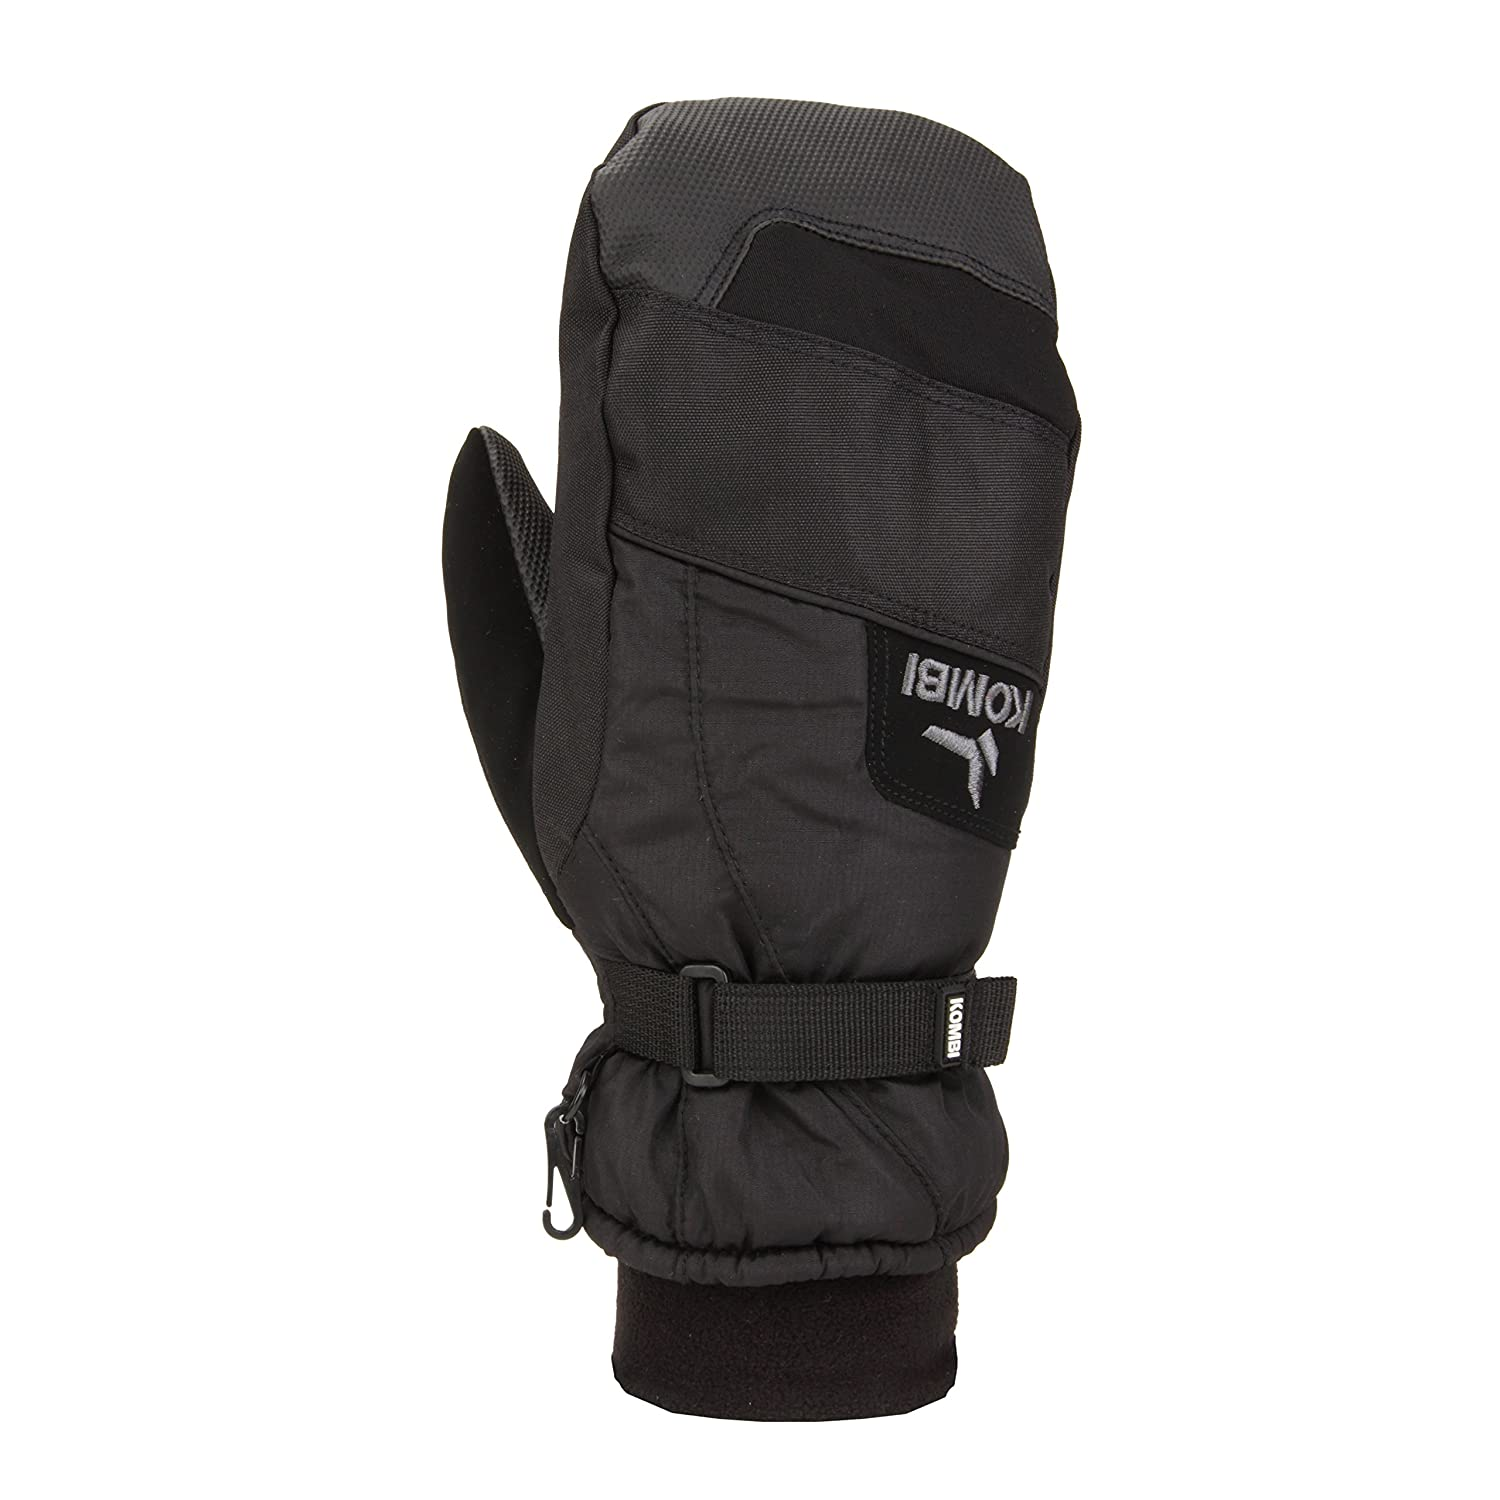 Kombi Men's Hustle Mittens